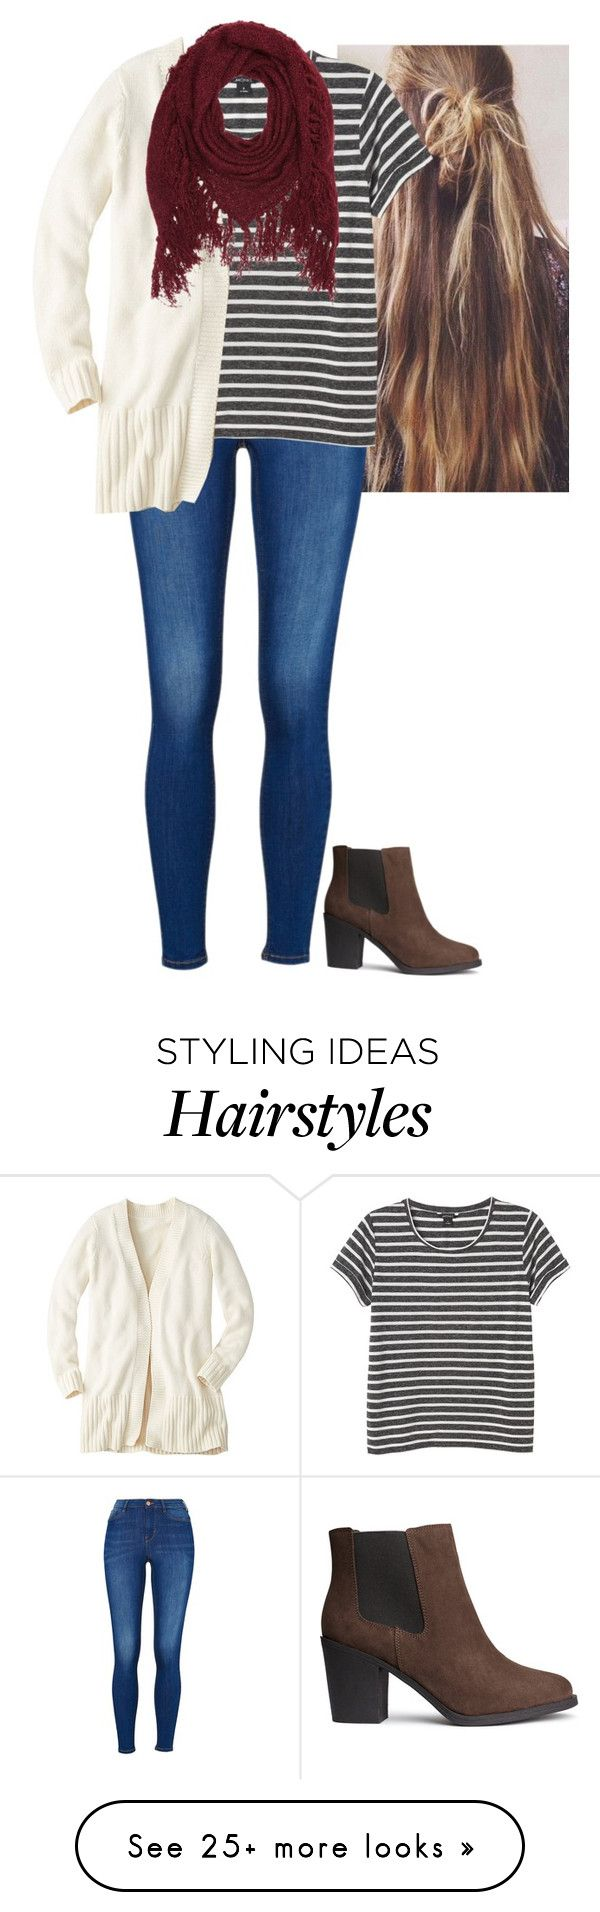 """""""Always Wear Your Invisible Crown"""" by morgantaylor37 on Polyvore featuring Monki, Charlotte Russe and H&M"""